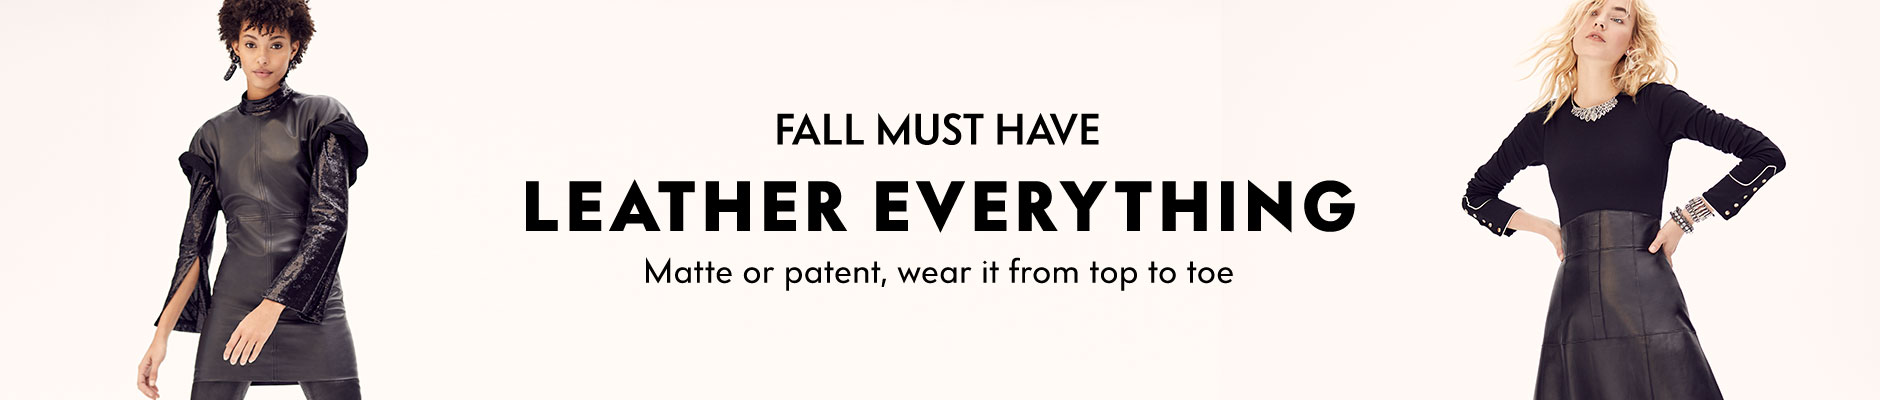 Fall must have leather everything matte or patent, wear it from top to toe